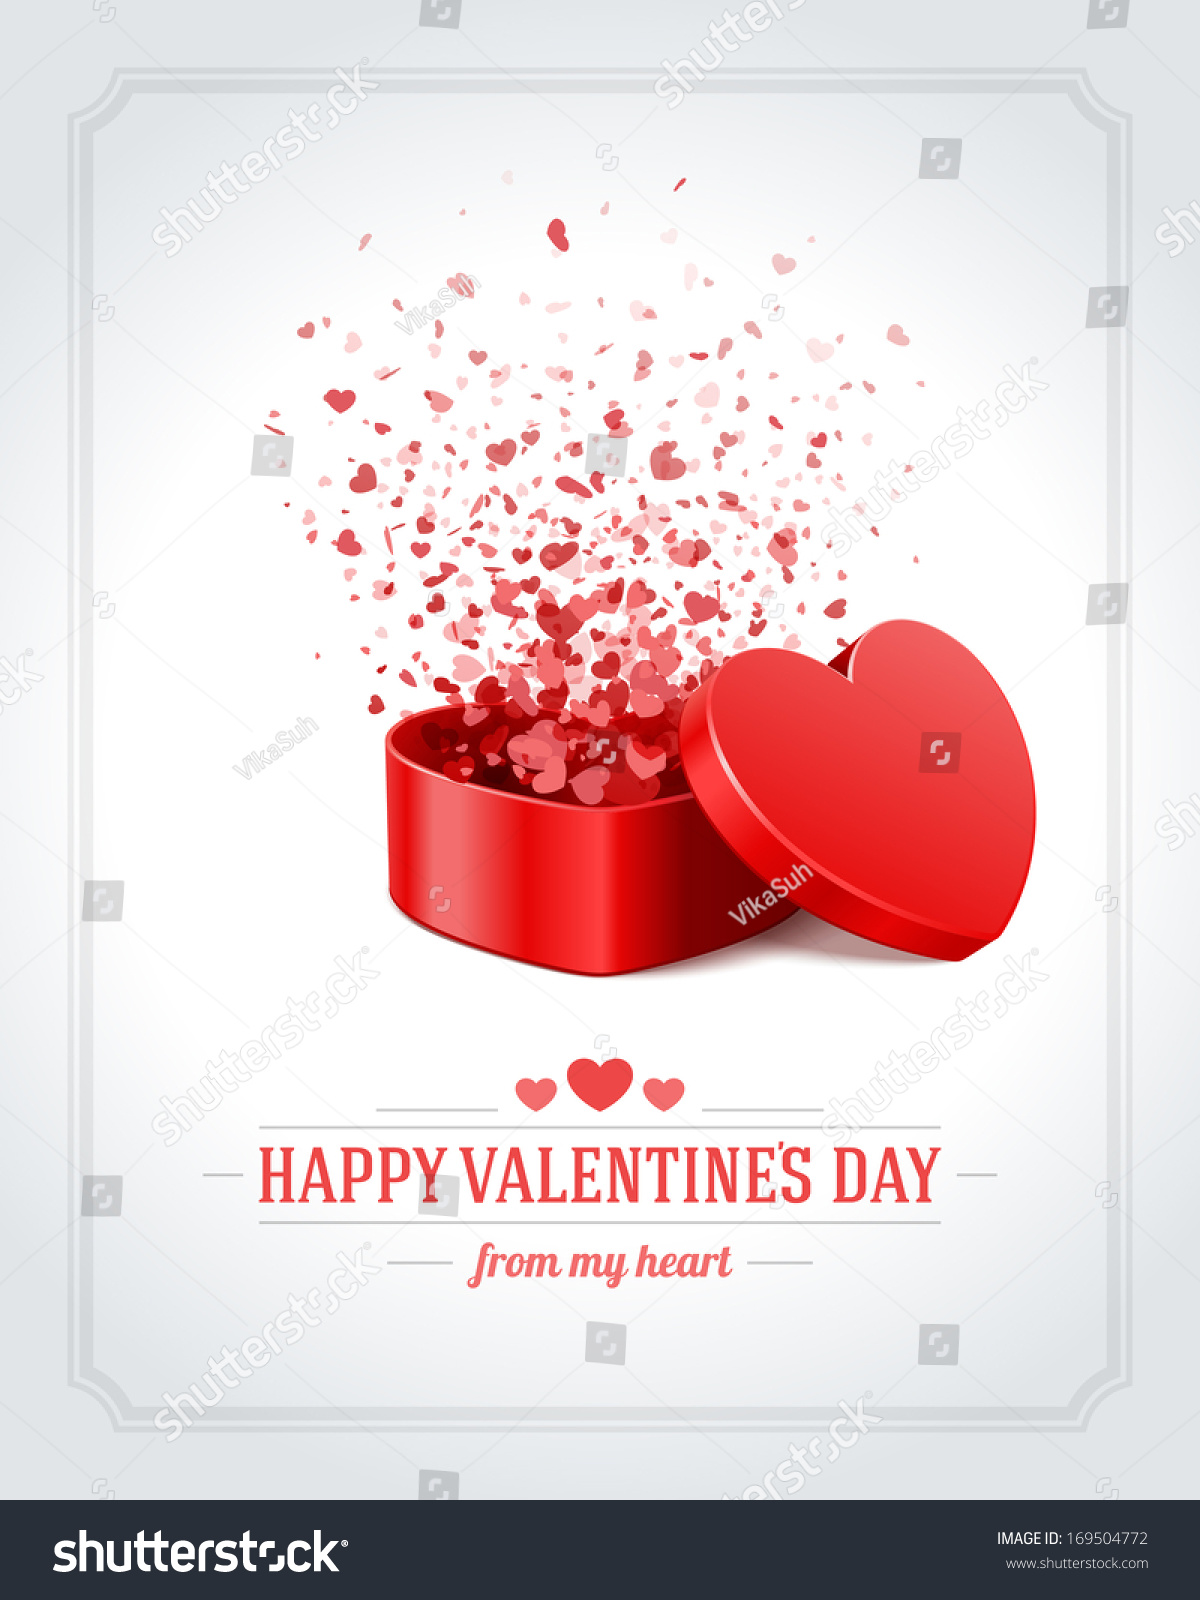 Happy Valentines Day Card Open Heart Vector 169504772 – Valentine S Day Card Images